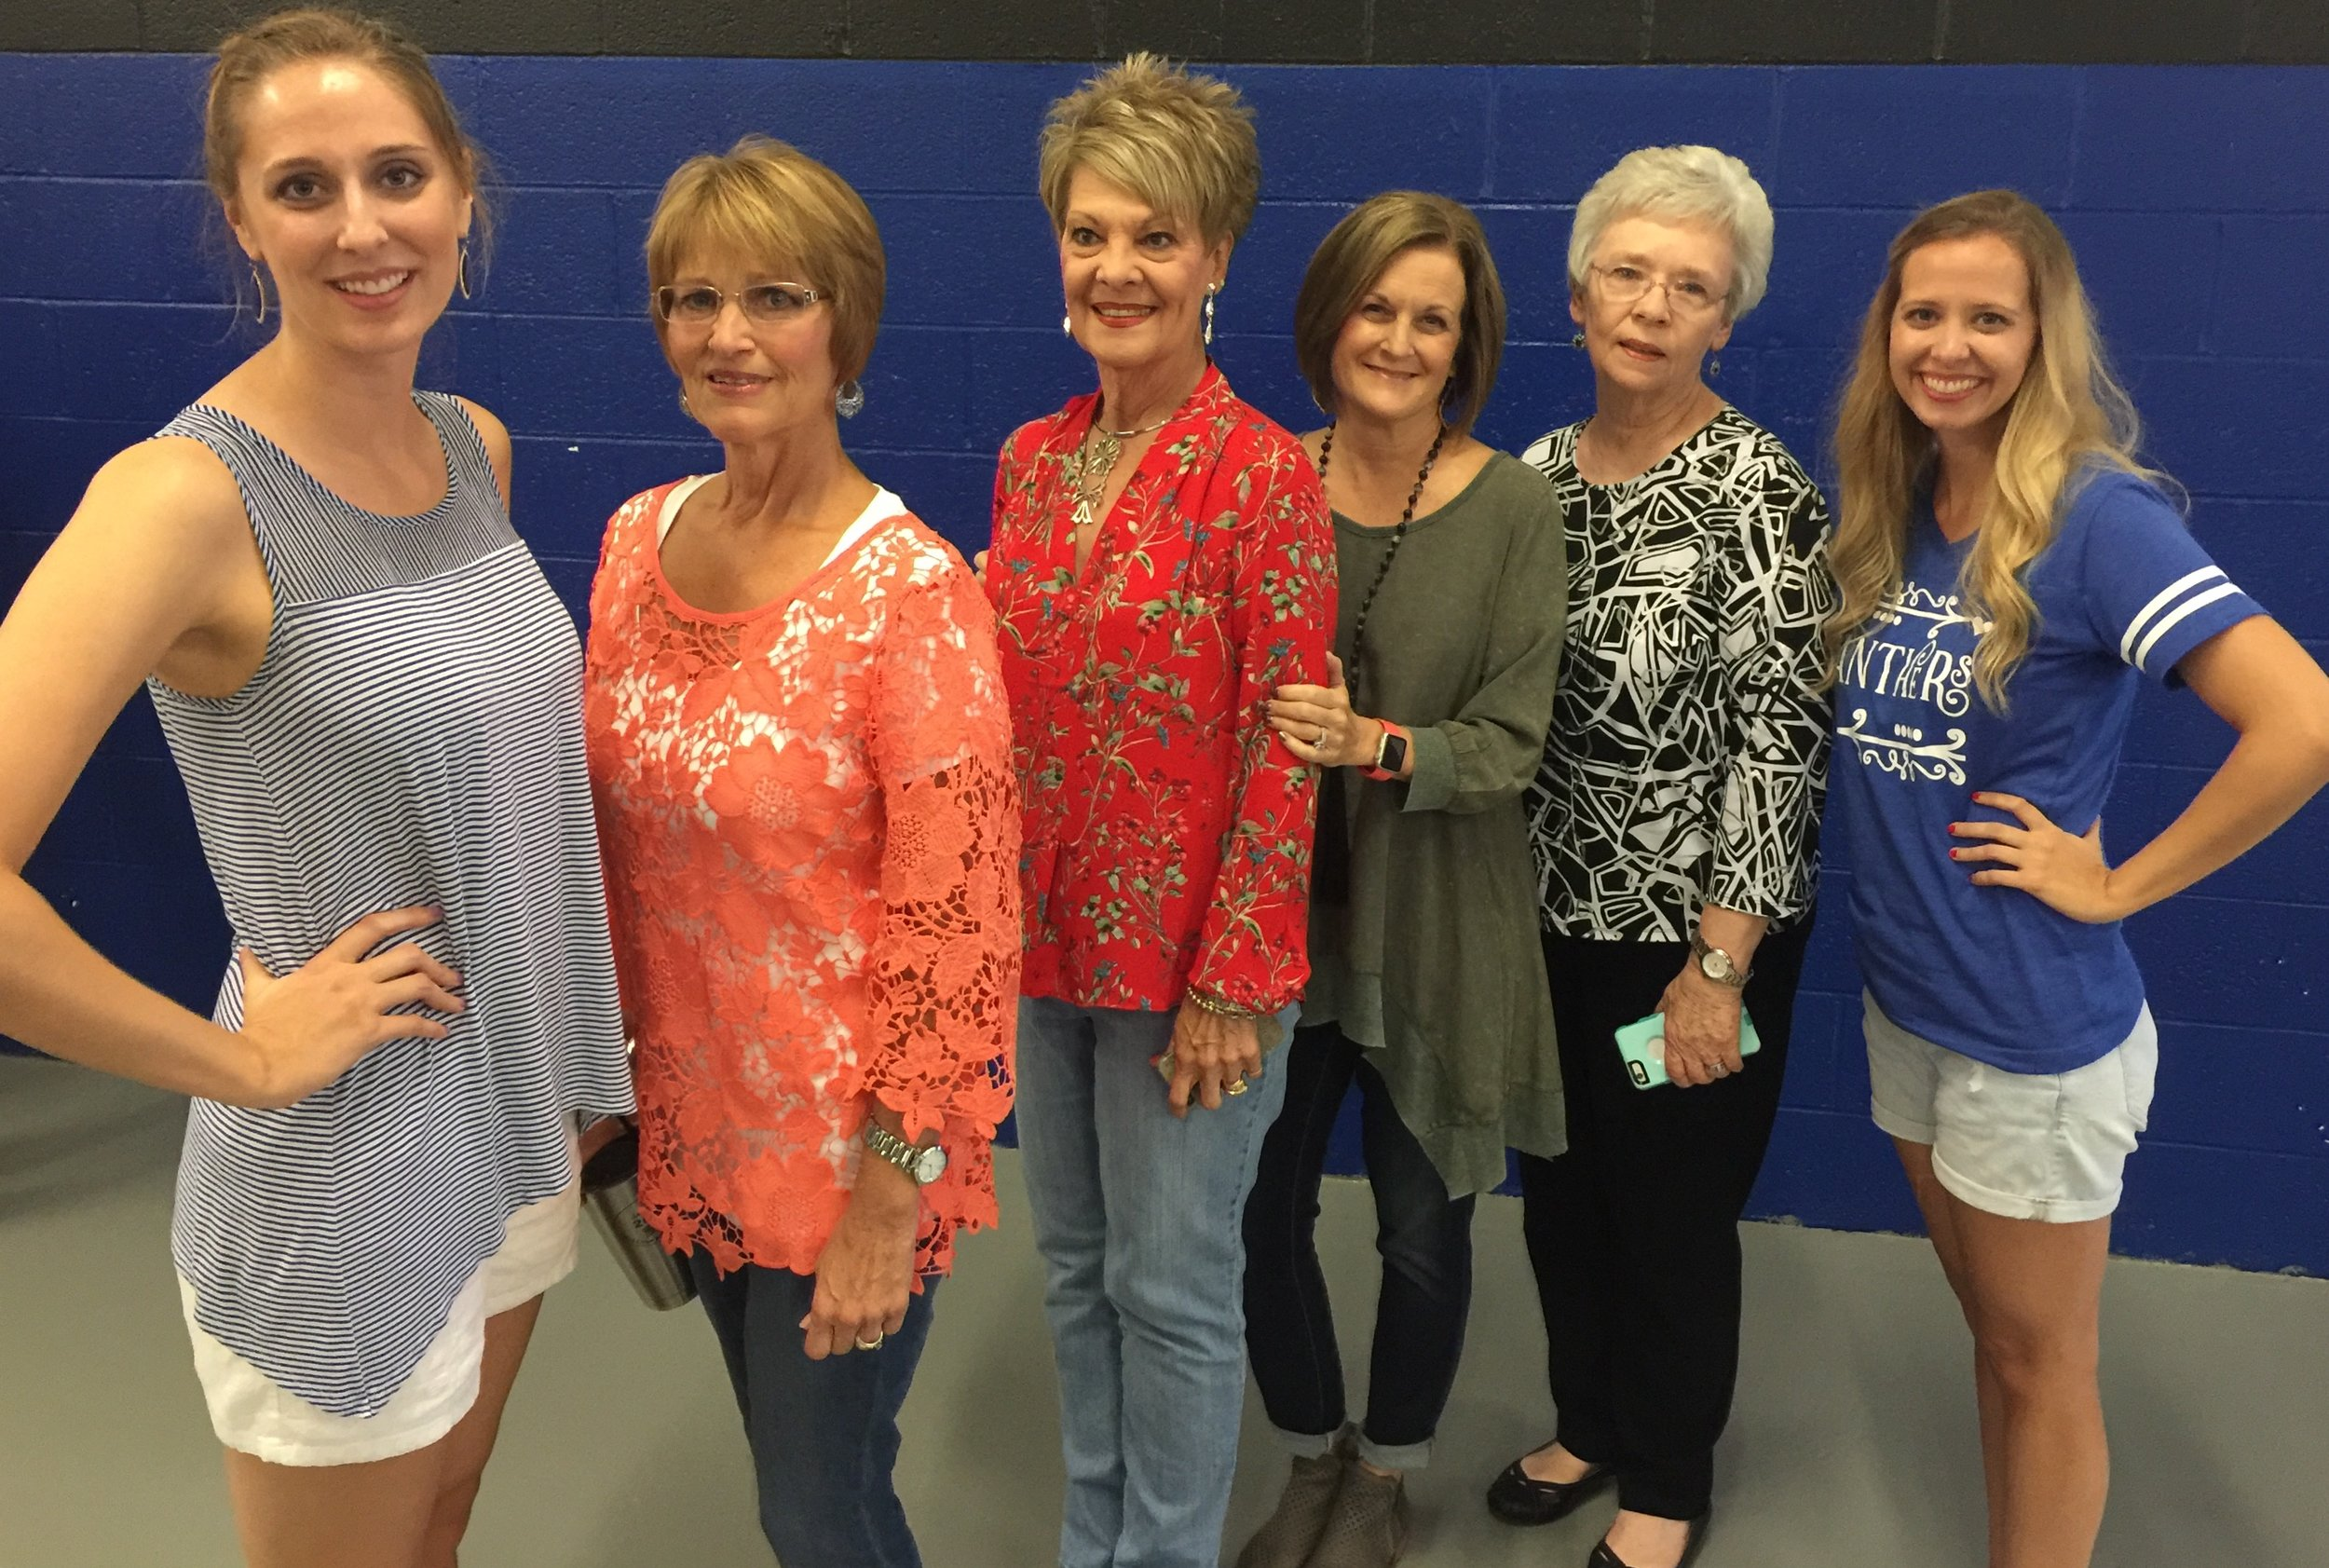 Sweet coaches'daughters and wives!